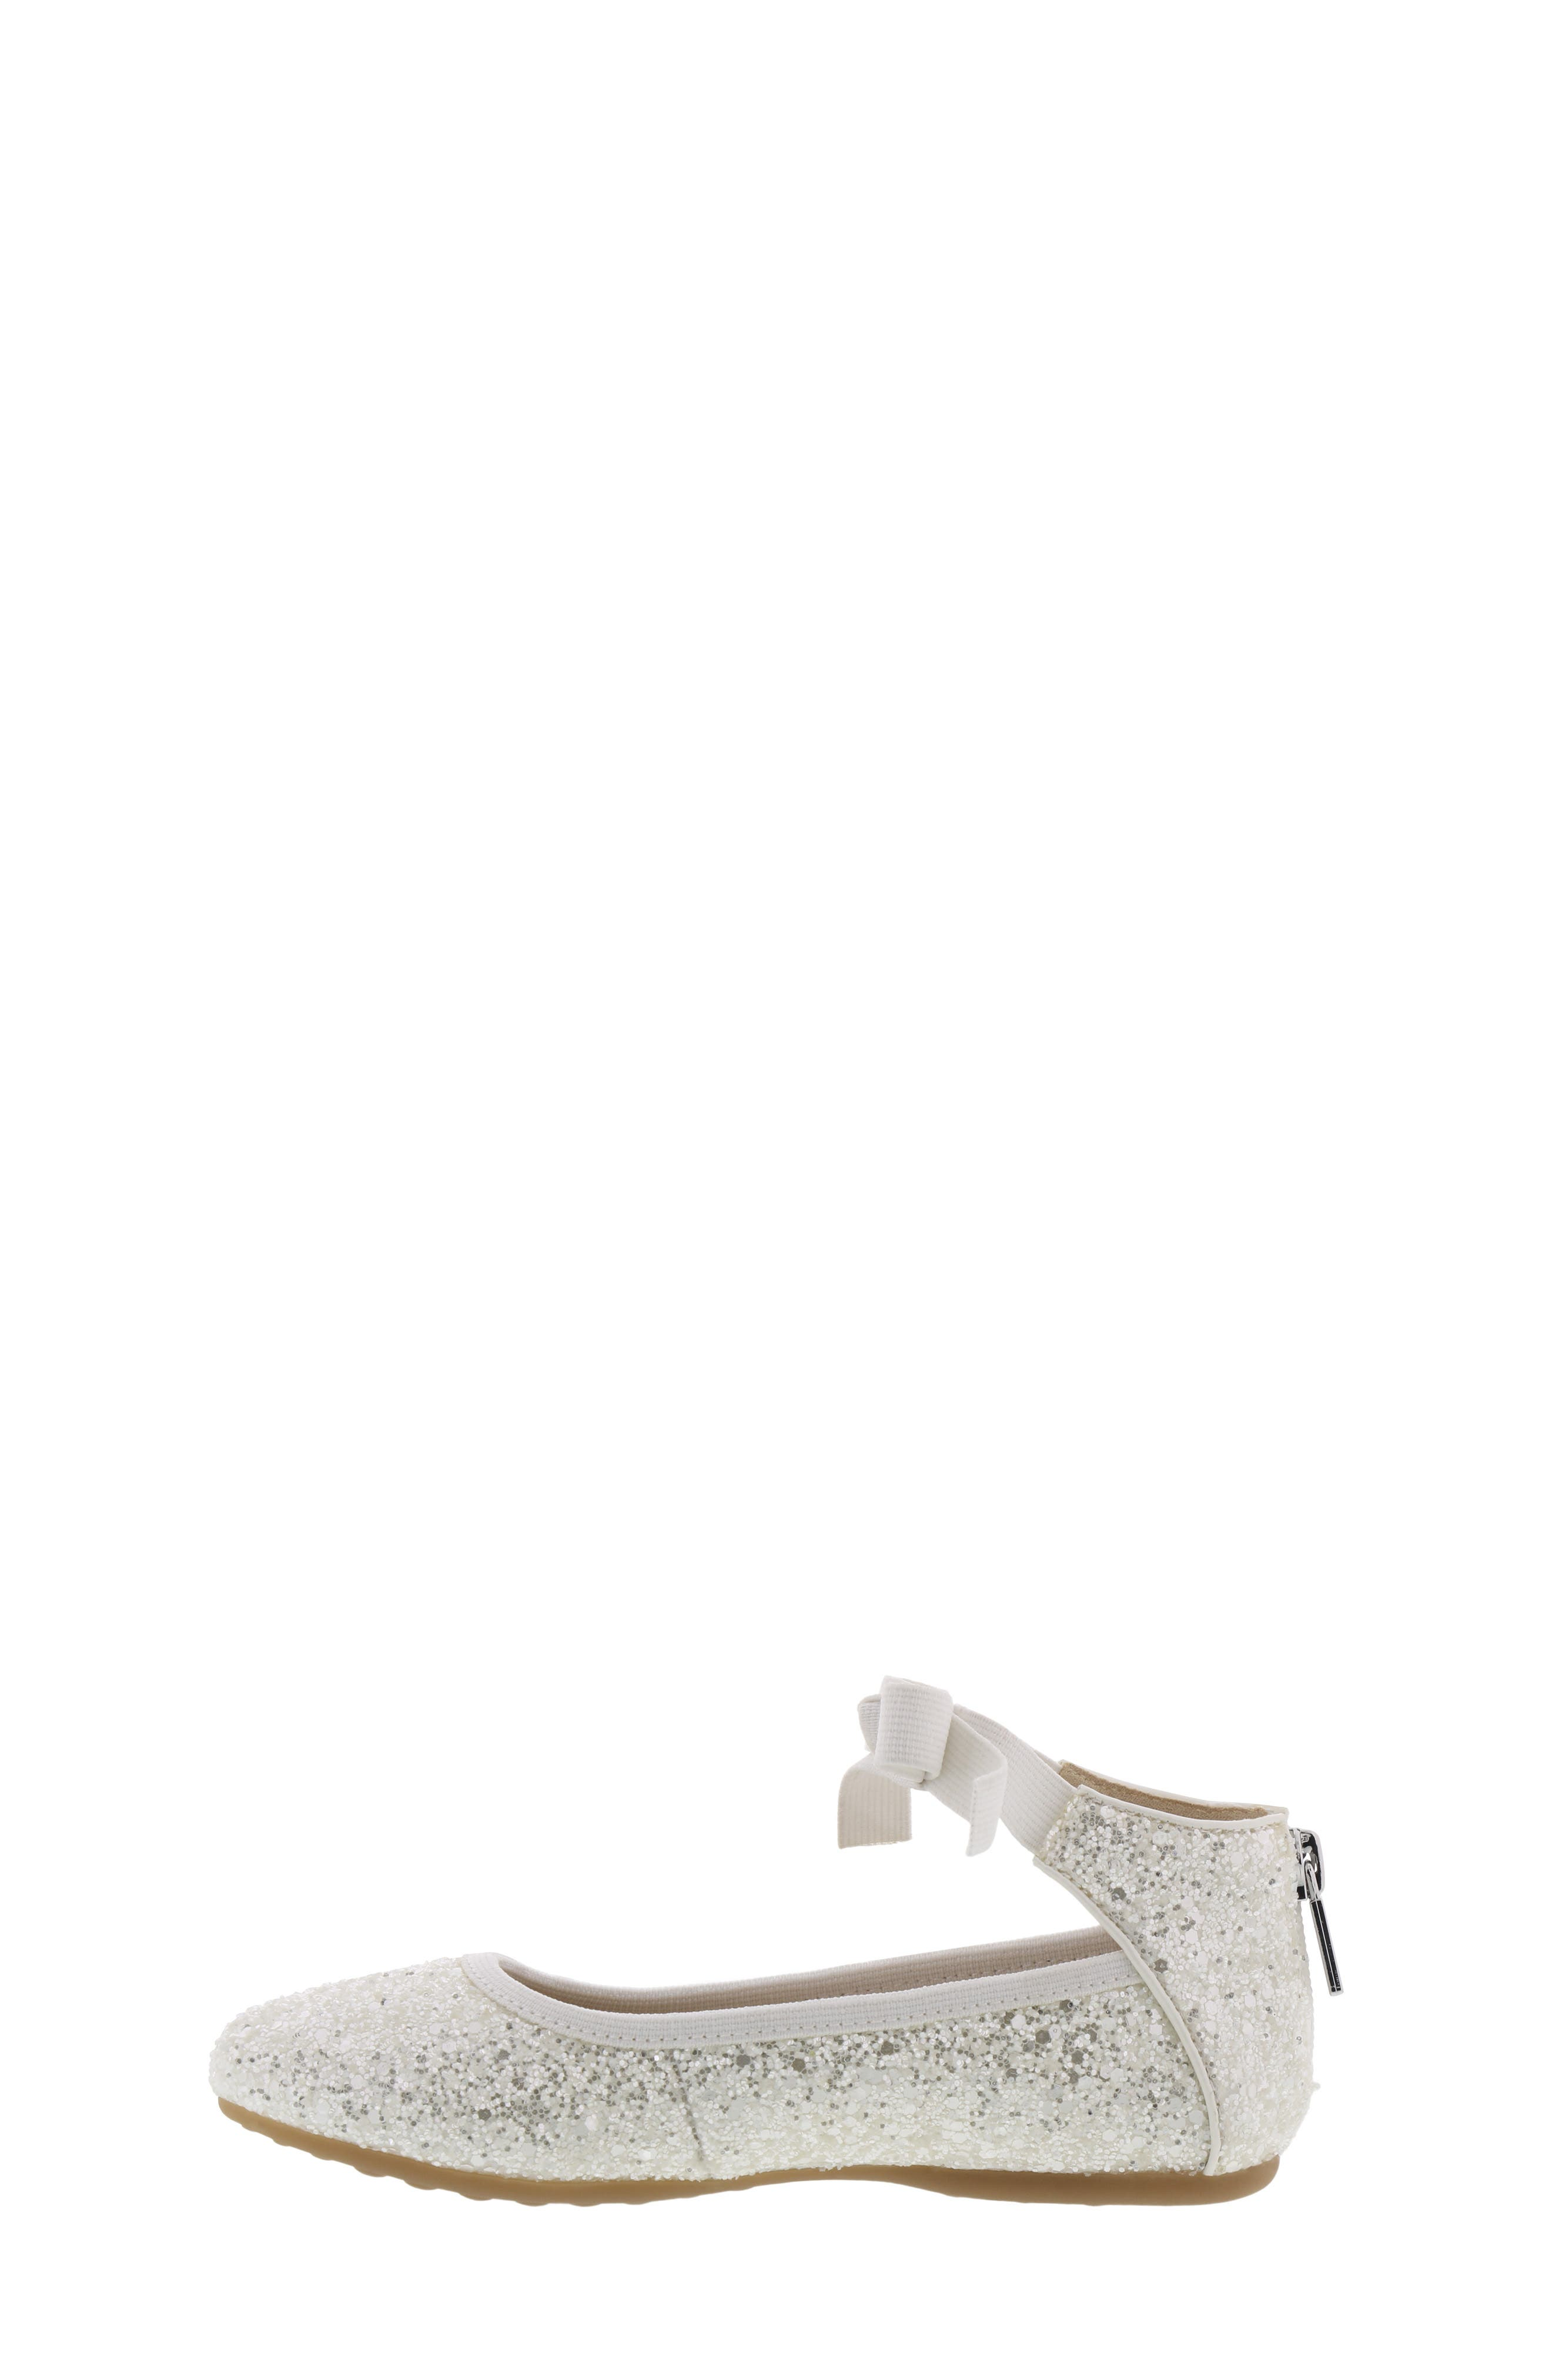 KENNETH COLE NEW YORK, Rose Bow Ballet Flat, Alternate thumbnail 8, color, WHITE SUGAR GLITTER